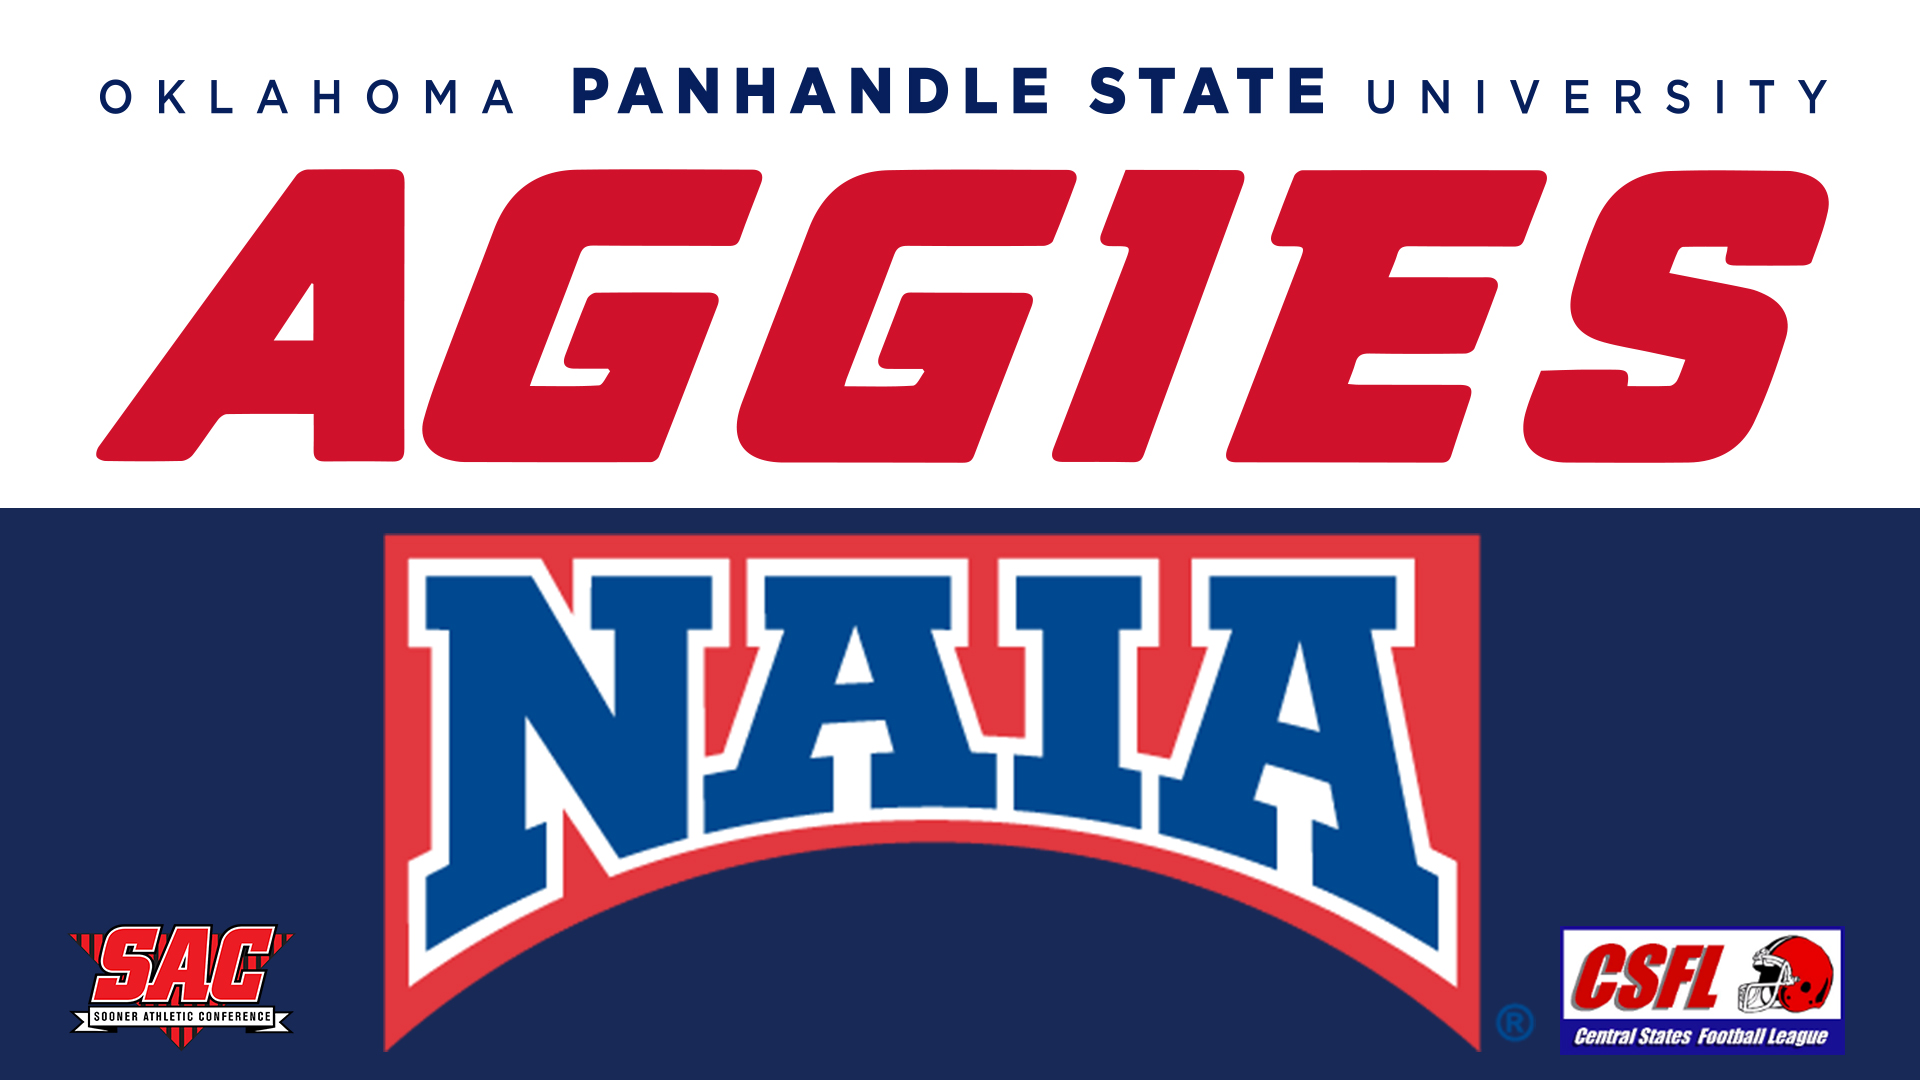 Panhandle State University was granted full membership into the National Association for Intercollegiate Athletics Wednesday, April 12 at the NAIA National Convention.